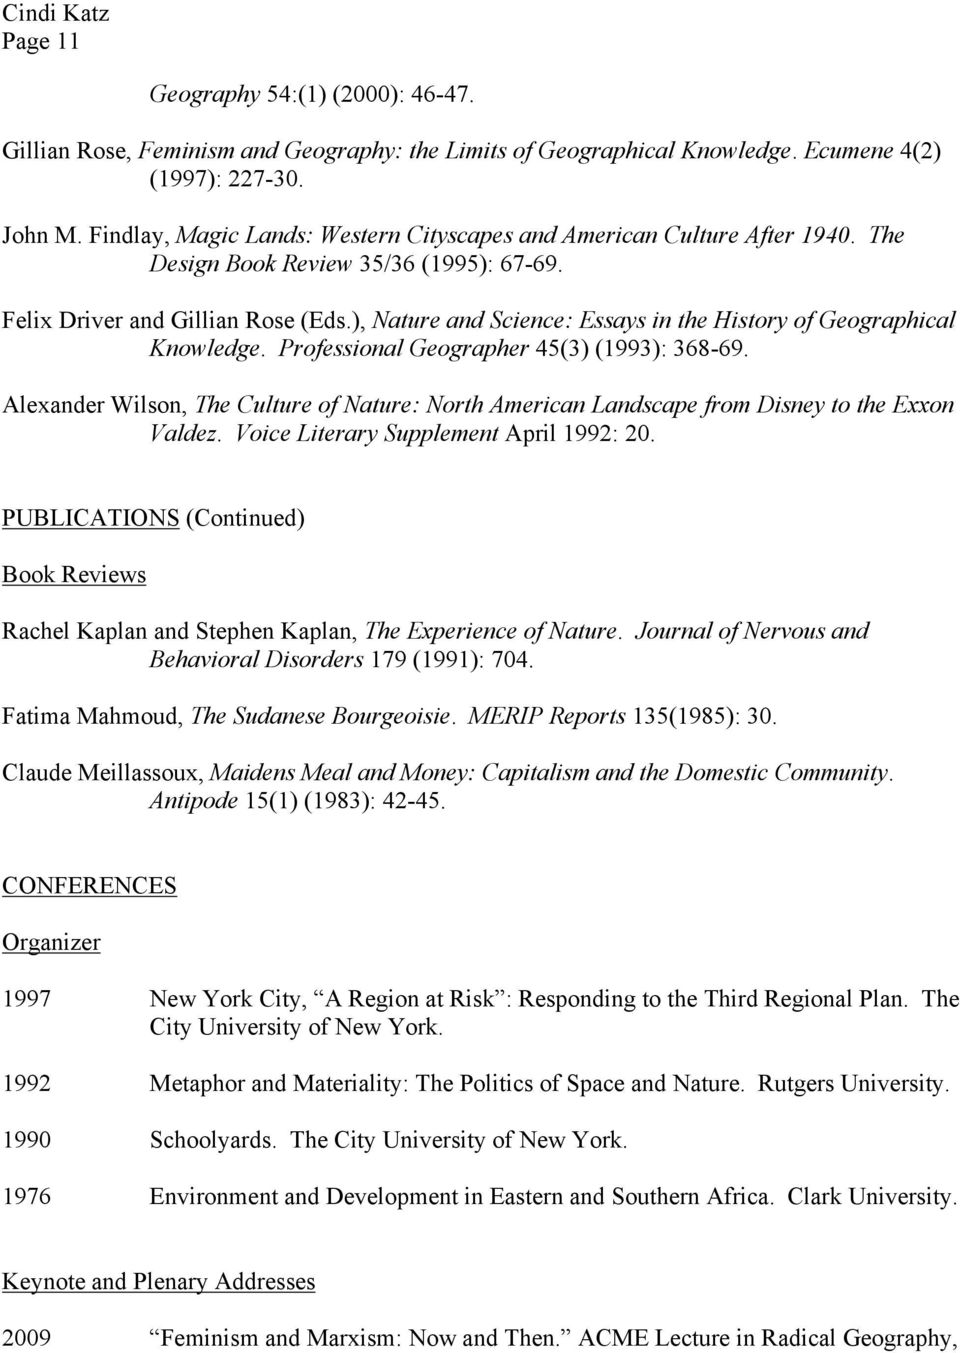 ), Nature and Science: Essays in the History of Geographical Knowledge. Professional Geographer 45(3) (1993): 368-69.